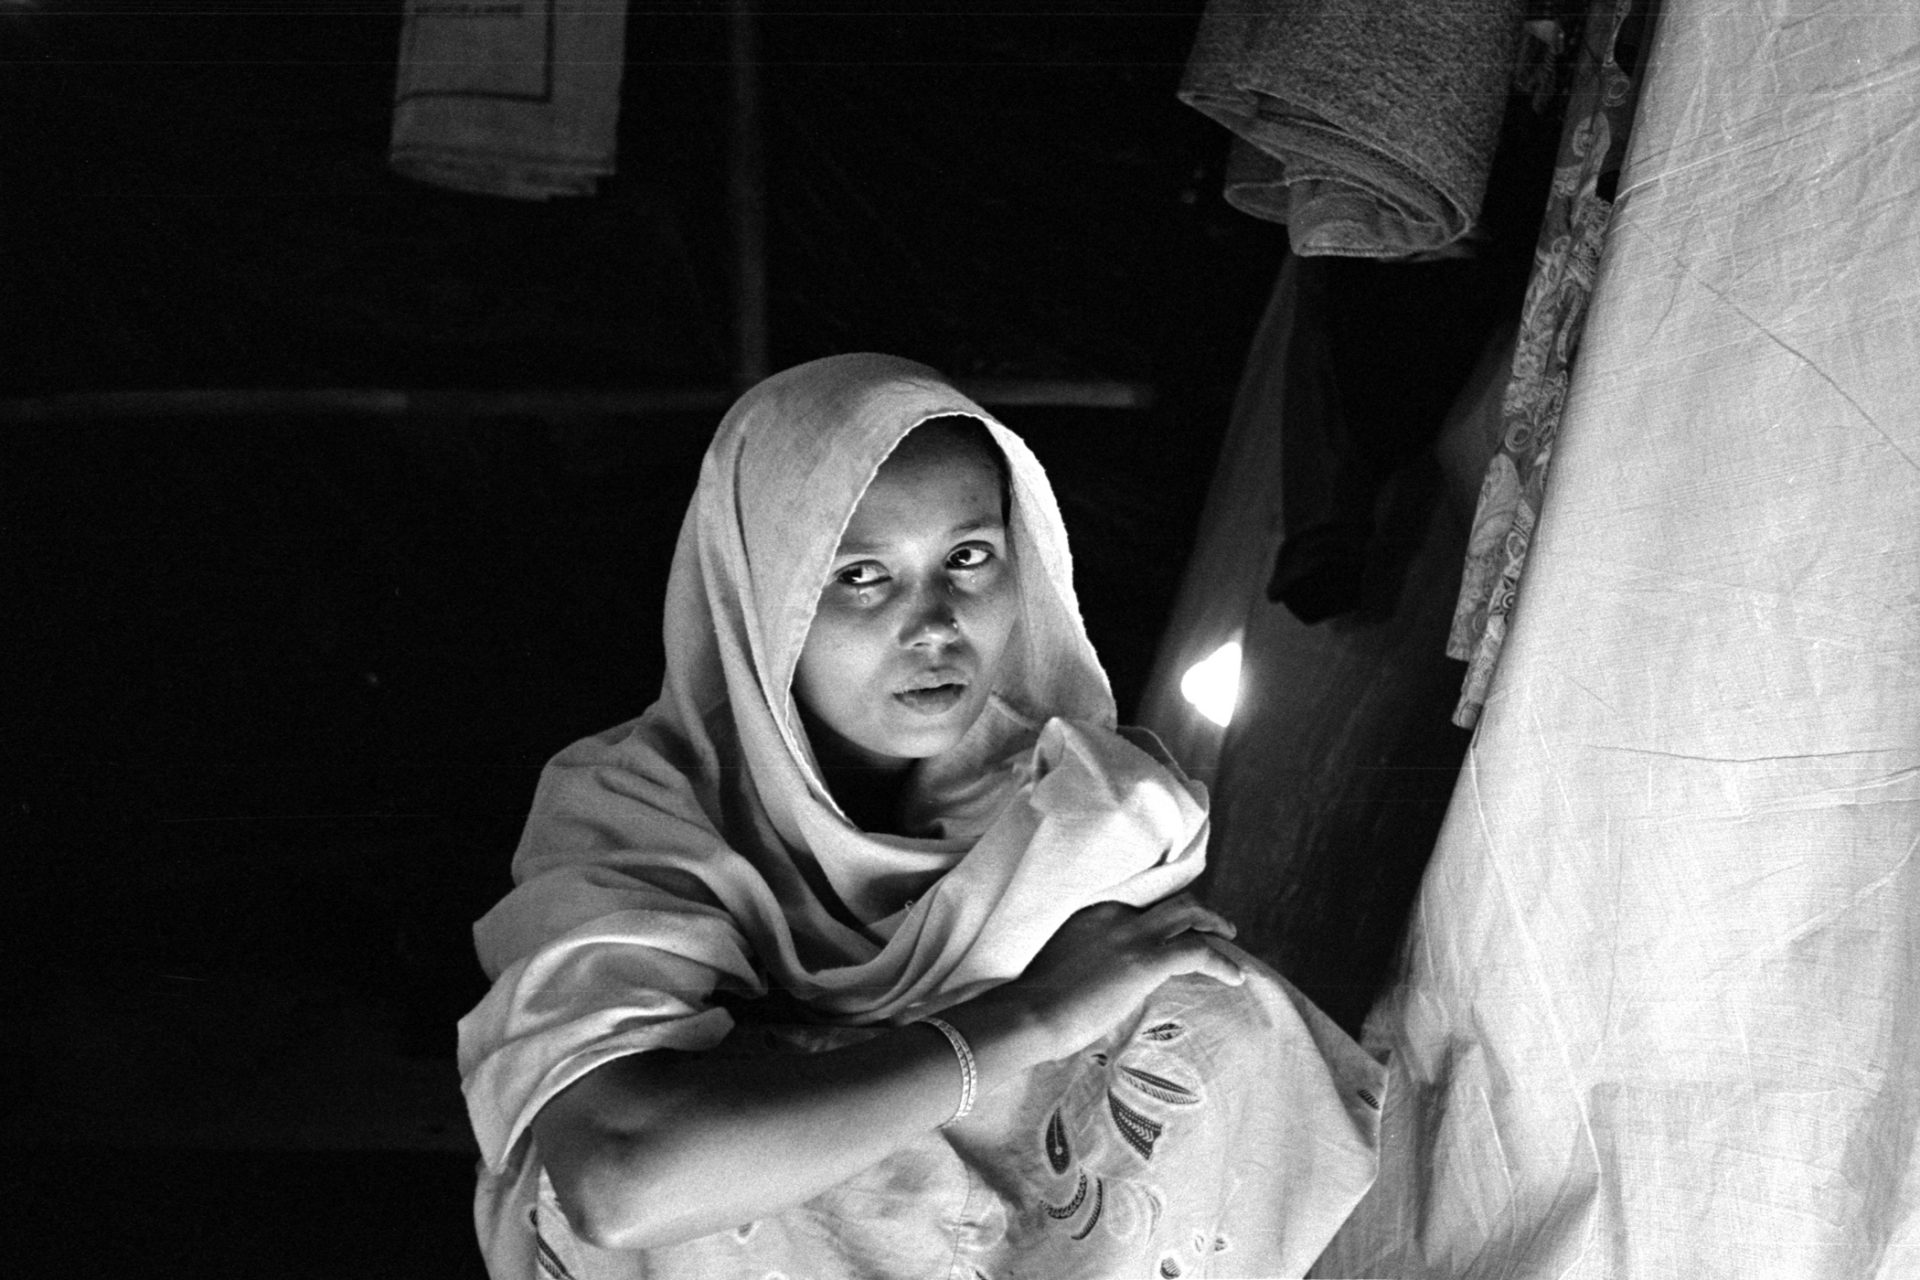 22 year old Rashida Begum from Tula Toli, Maungdaw sits in her makeshift hut at Balukhali refugee camp in Bangladesh.  Tula Toli was a scene of one of the largest scale massacres in Rakhine State in 2017.  Rashida's parents, sister and son were all killed by Myanmar's military.  She was taken into a shack with her sister and three other women where they were gang raped by Myanmar soldiers.  After being raped one of the soldiers slit her neck and left her for dead.  Miraculously, she survived the attack and made it across the border to relative safety in Bangladesh.